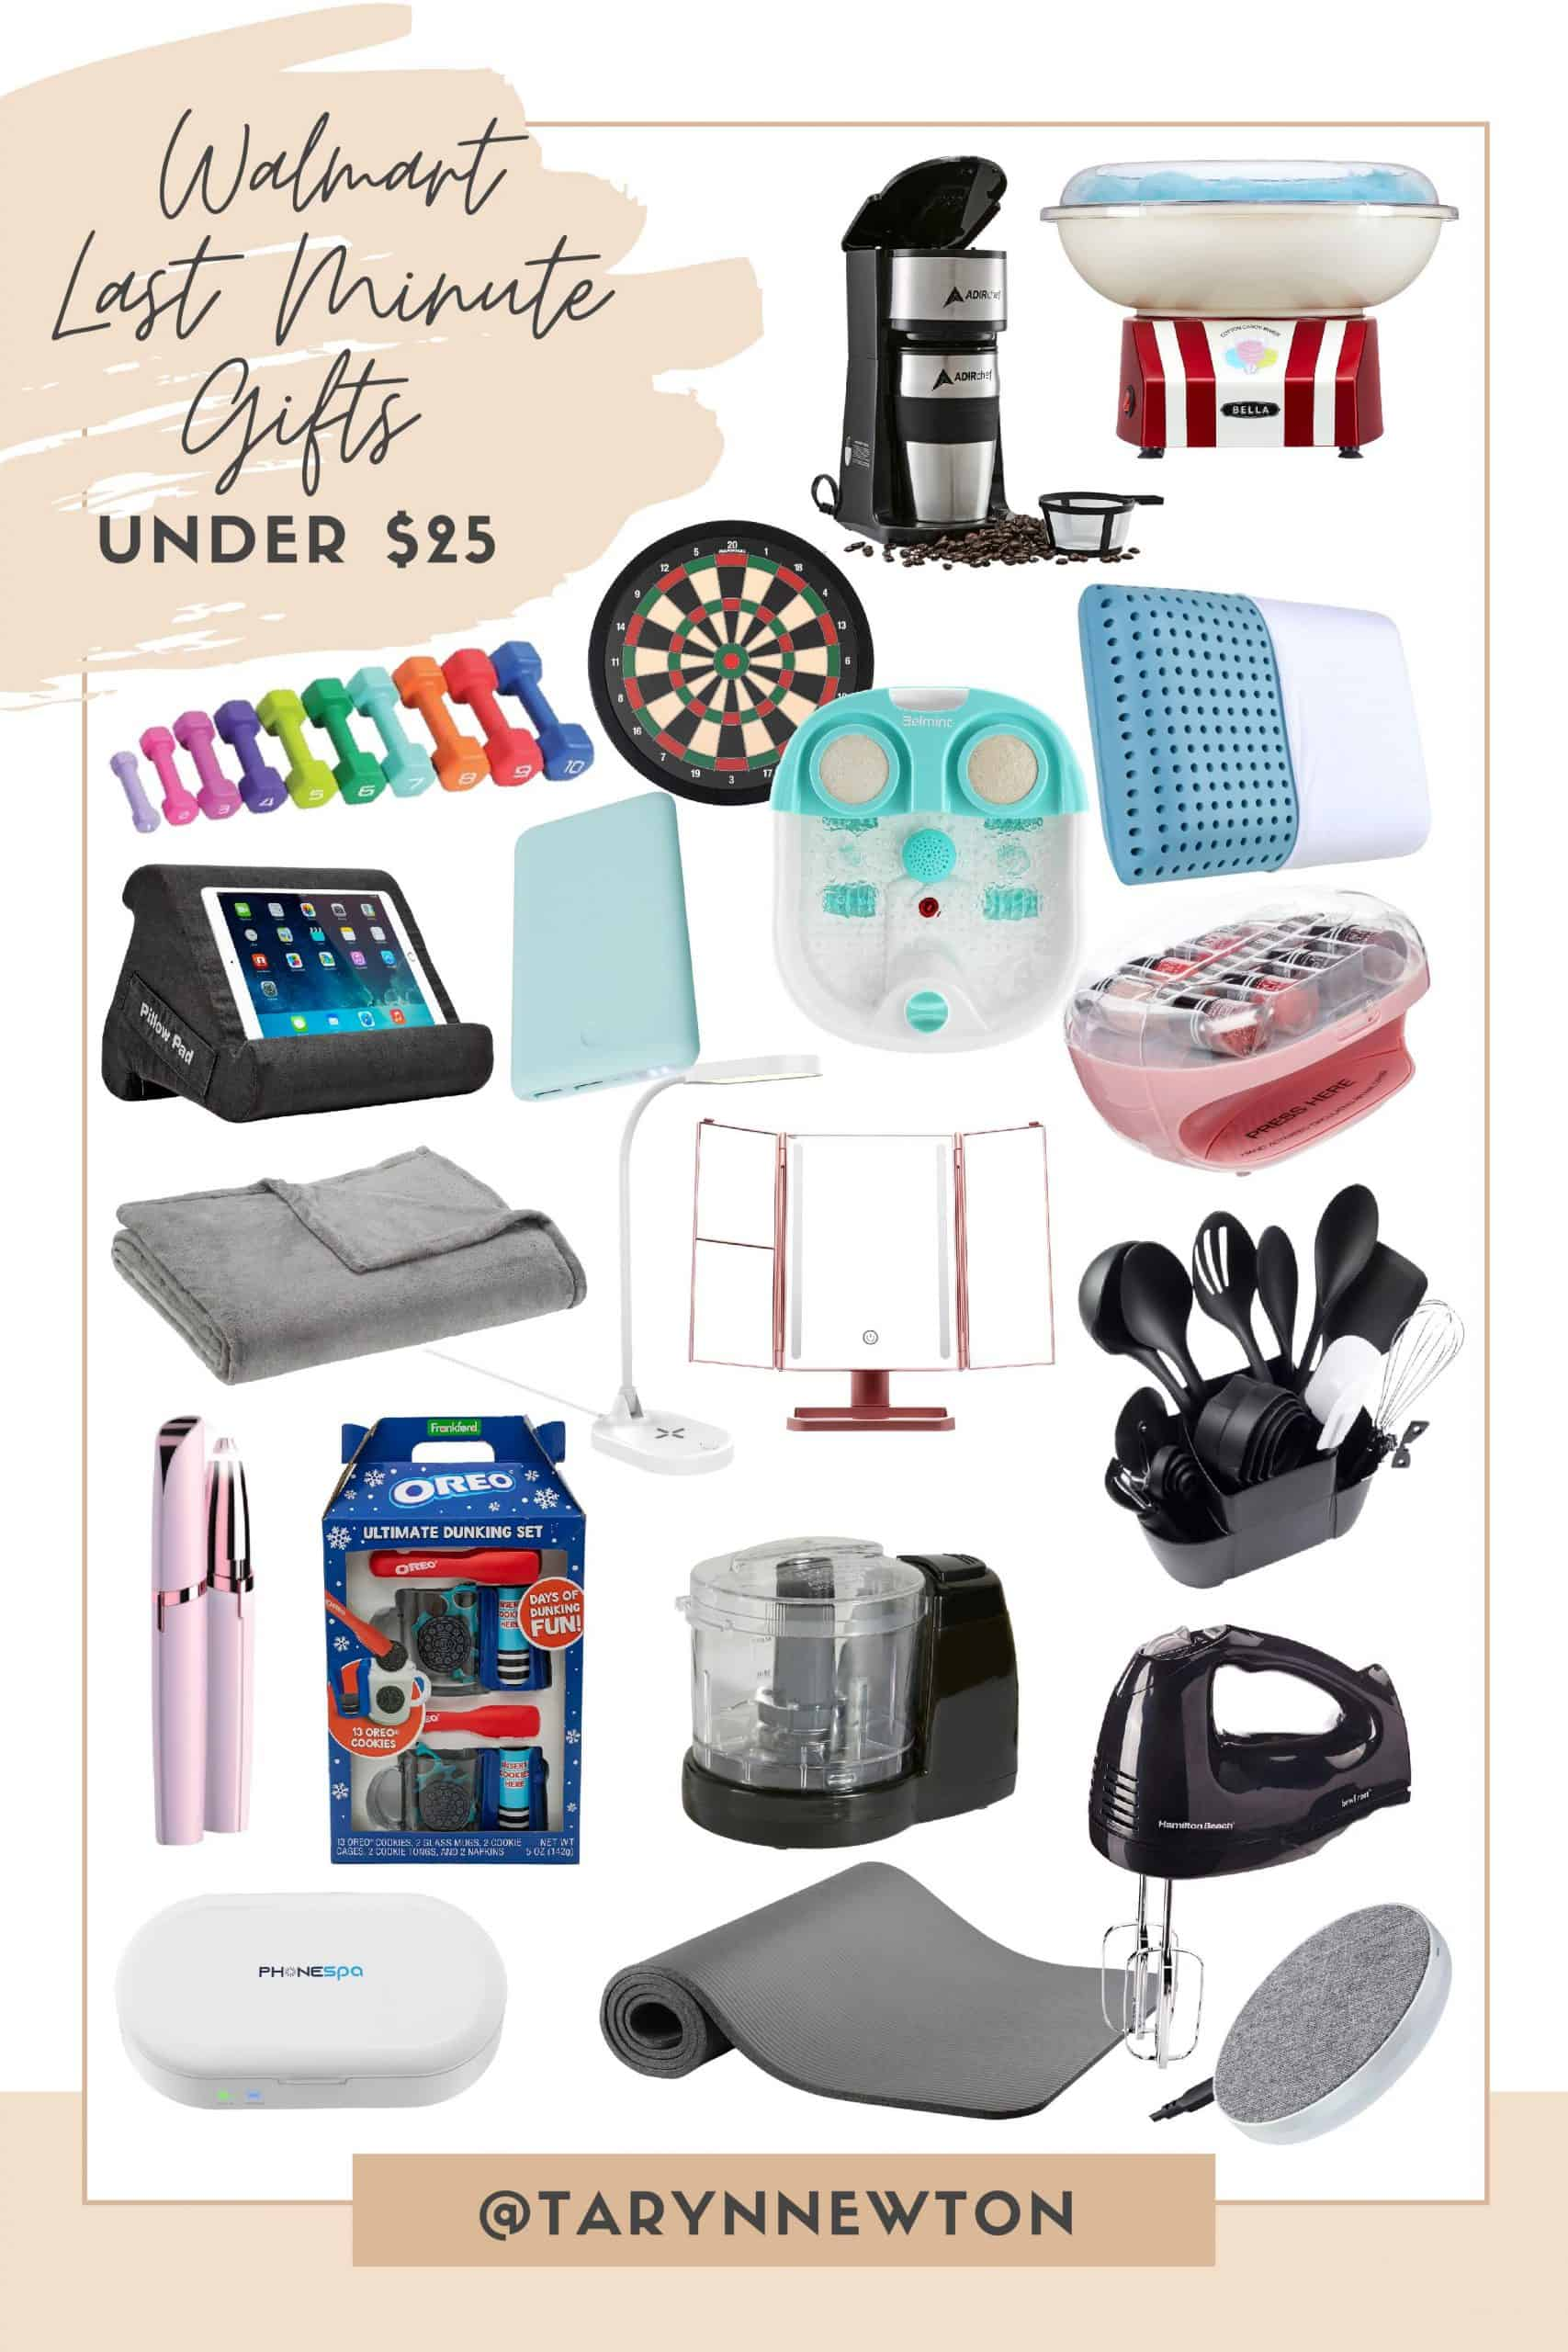 Last Minute Gift Ideas by popular Dallas life and style blog, Glamorous Versatility: collage image of a cotton candy machine, coffee maker, dart board, hand weights, kitchen utensils, weighted blanket, makeup mirror, food processor, hand mixer, ipad holder, yoga mat, and makeup light.